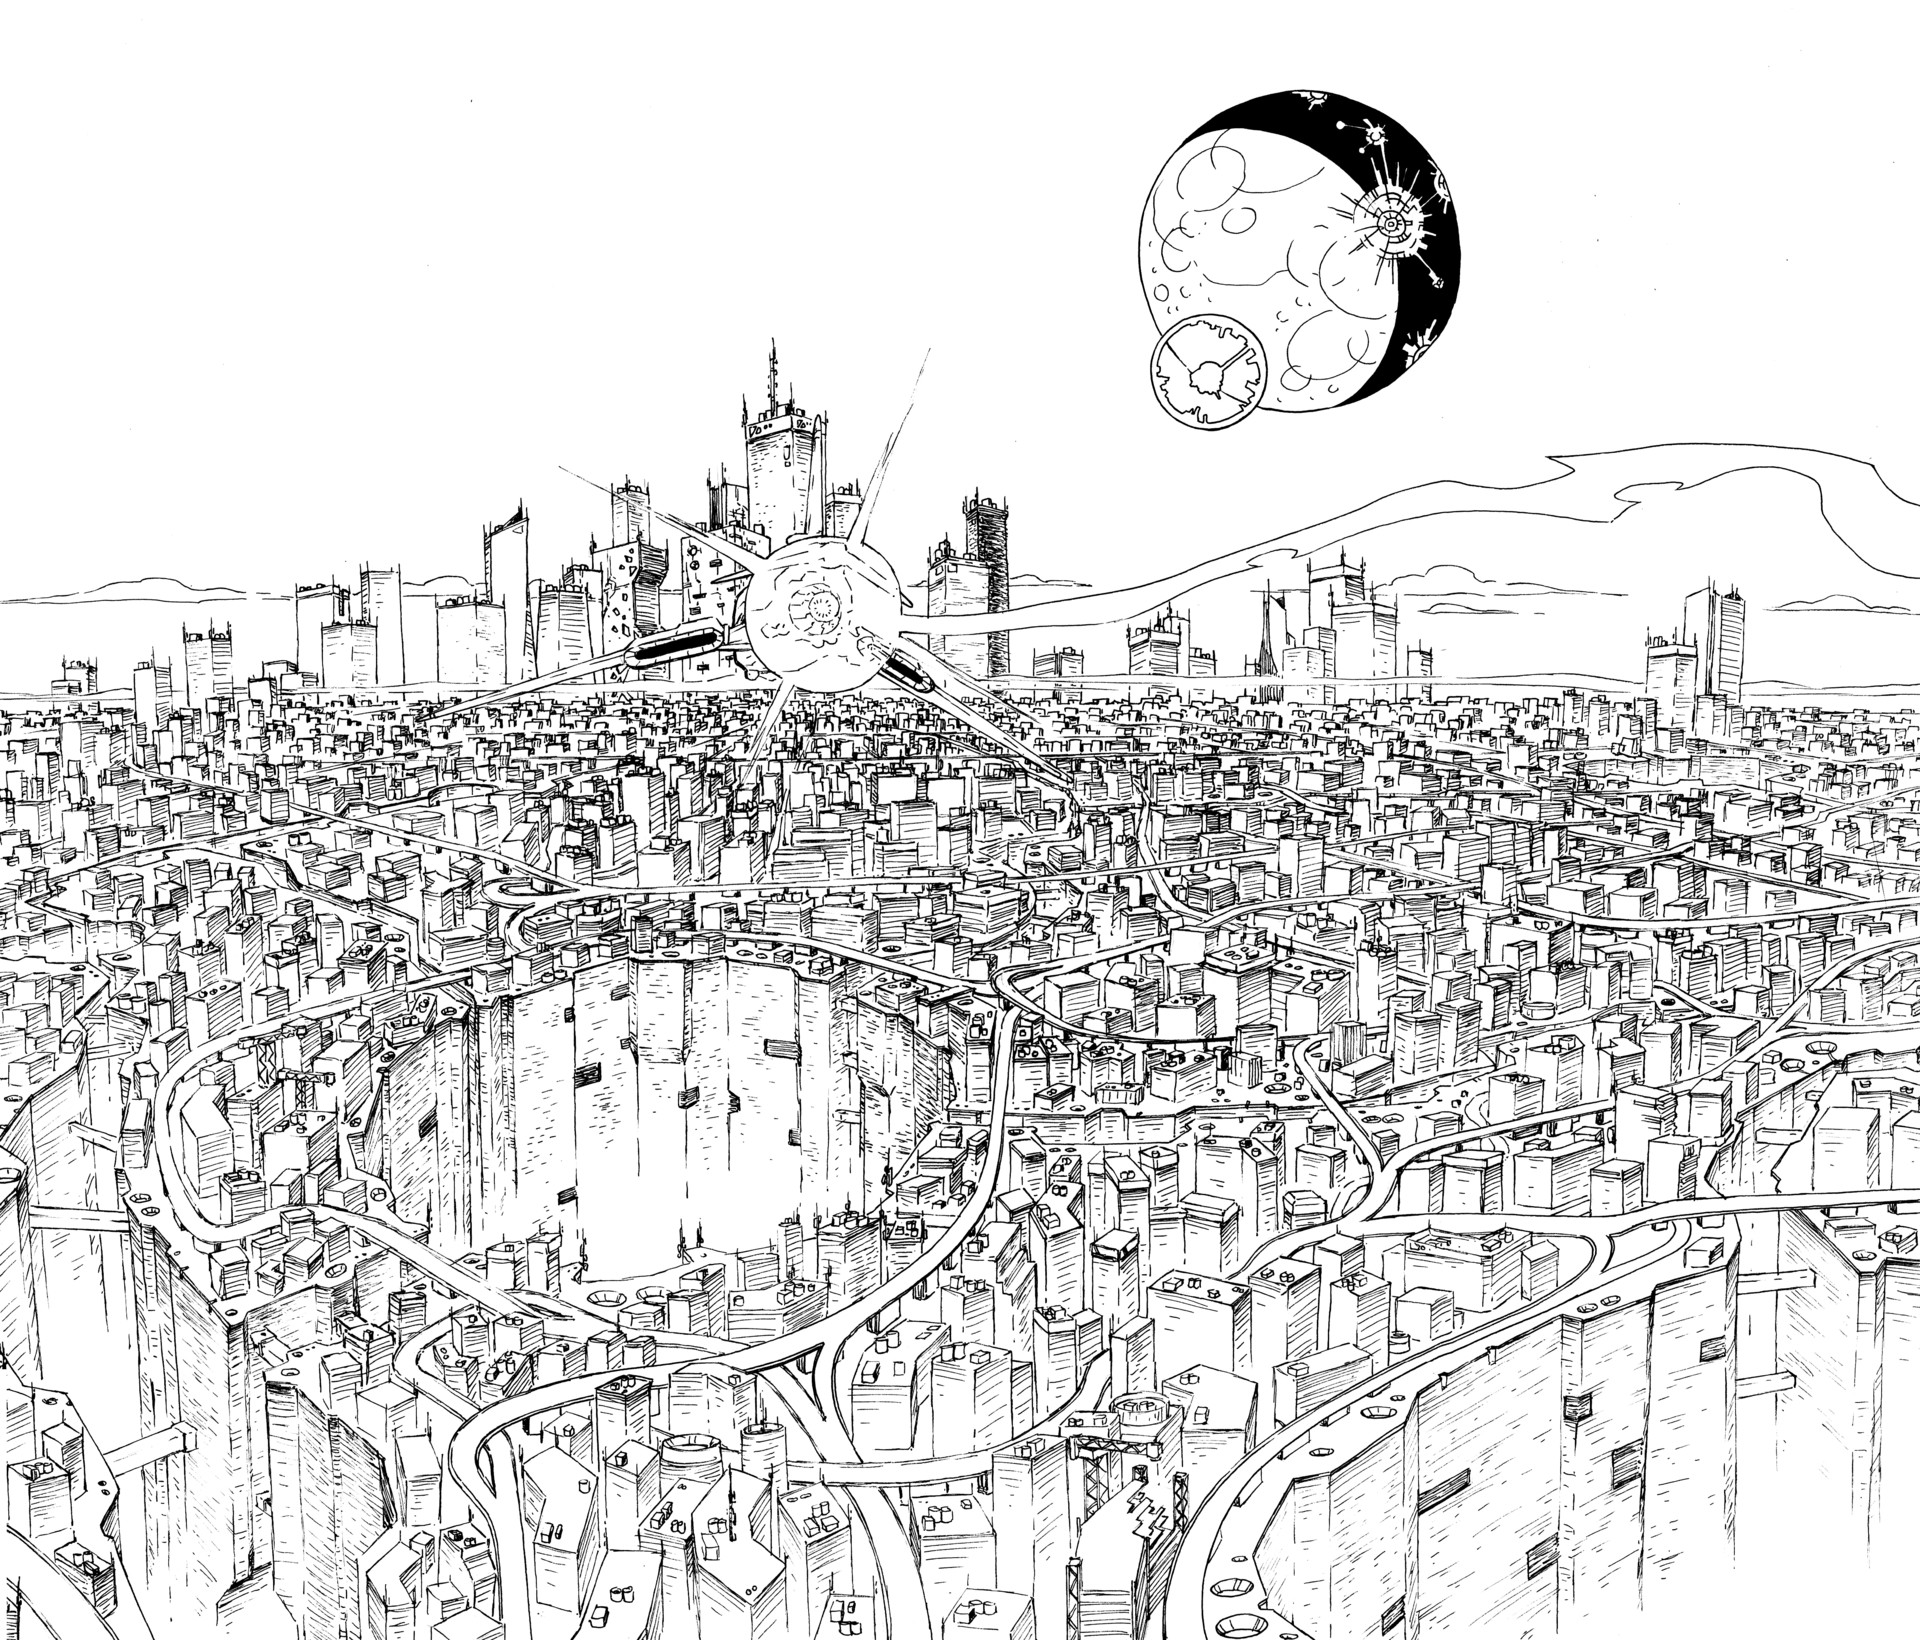 Max haig future city 2